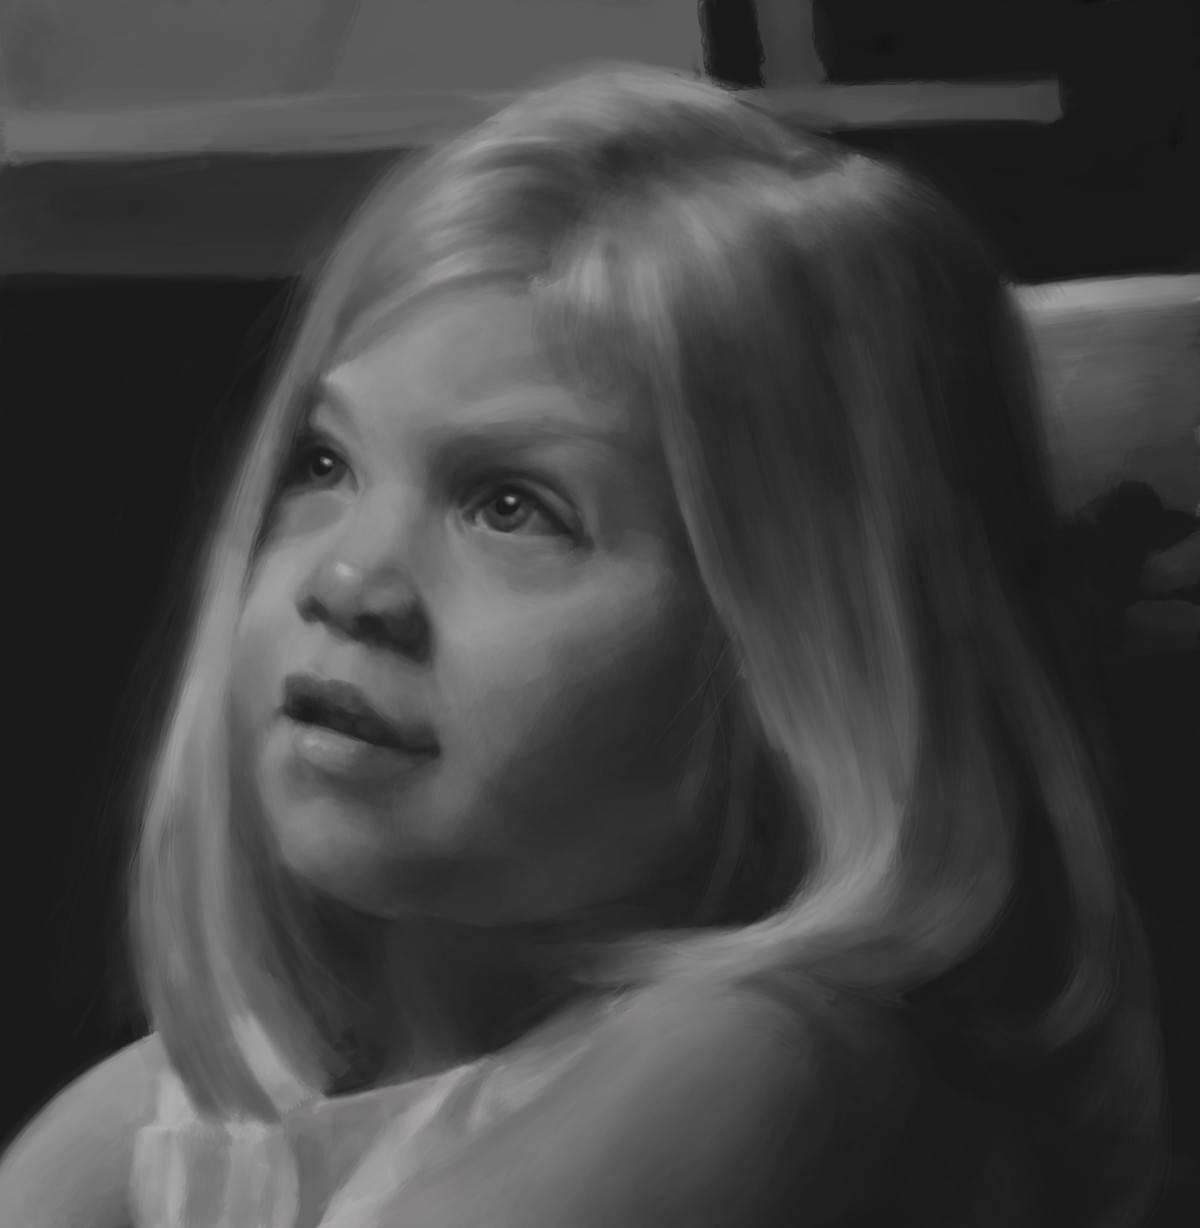 Monochromatic painting of a little girl, Sebastian Dahlström 2017.